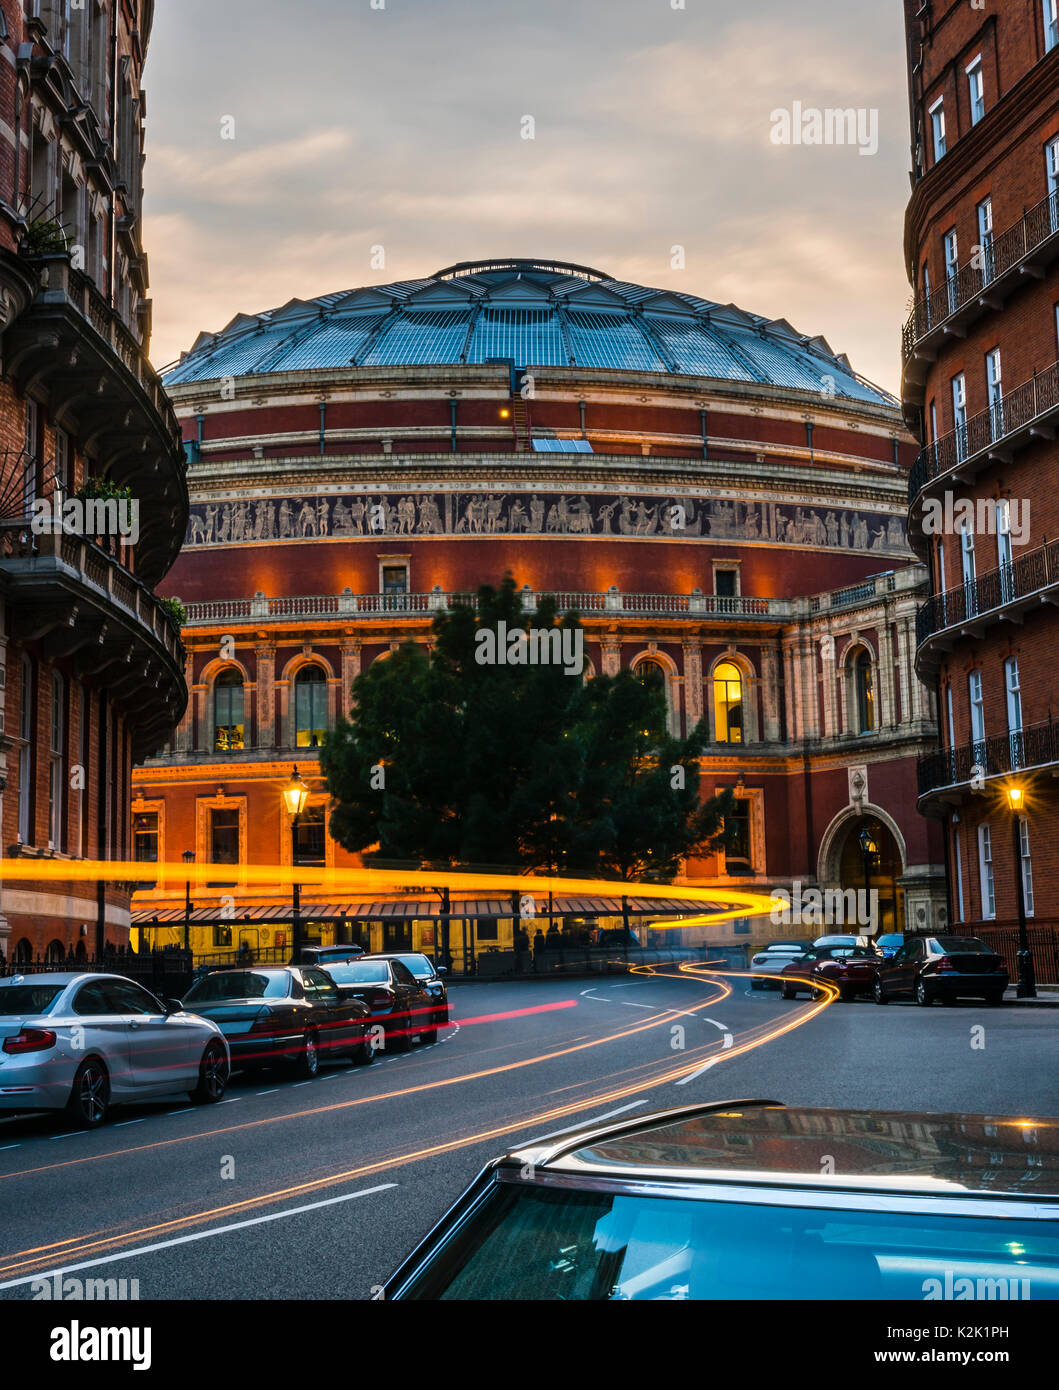 Royal Albert Hall at sunset, London, UK - Stock Image